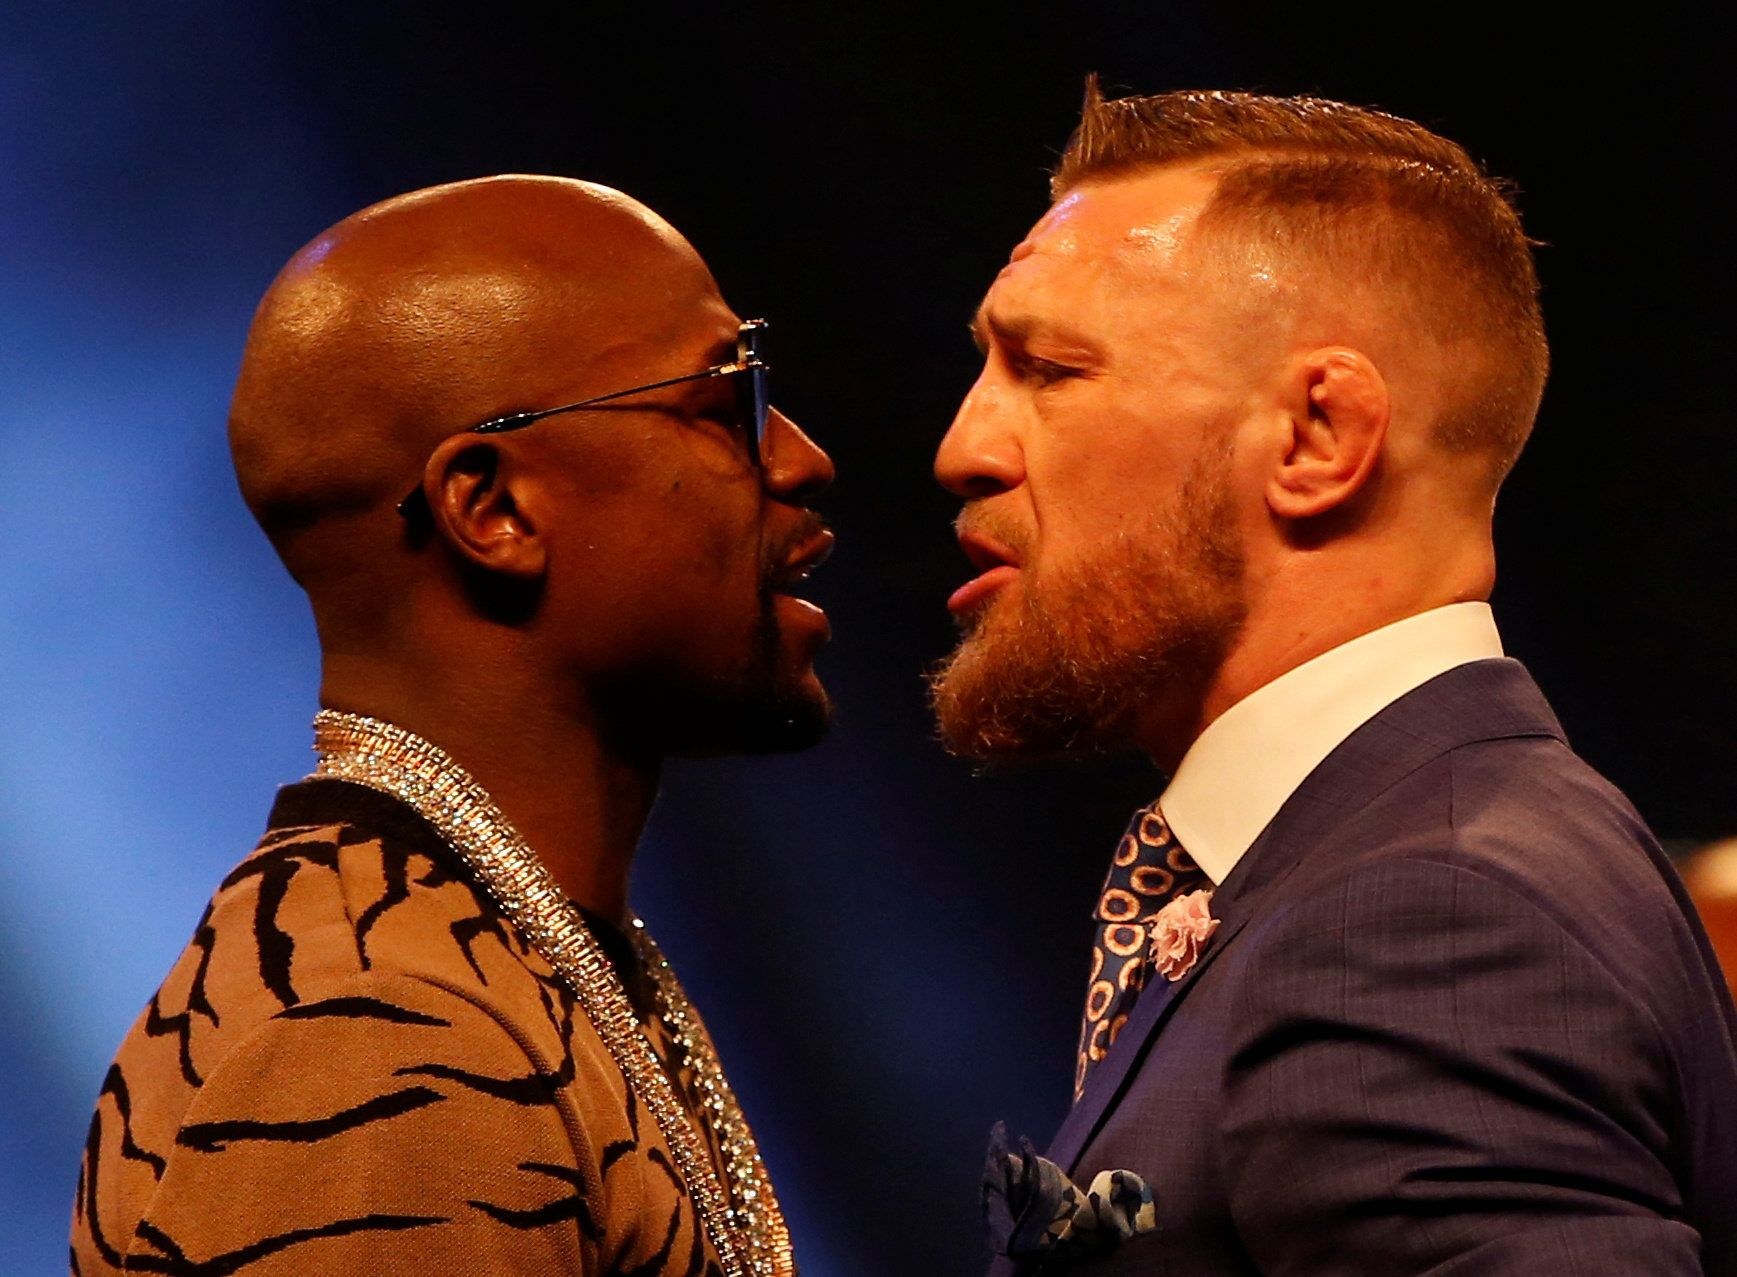 Boxing - Floyd Mayweather & Conor McGregor Press Conference - London, Britain - July 14, 2017   Floyd Mayweather and Conor McGregor during the press conference   Action Images via Reuters/Paul Childs